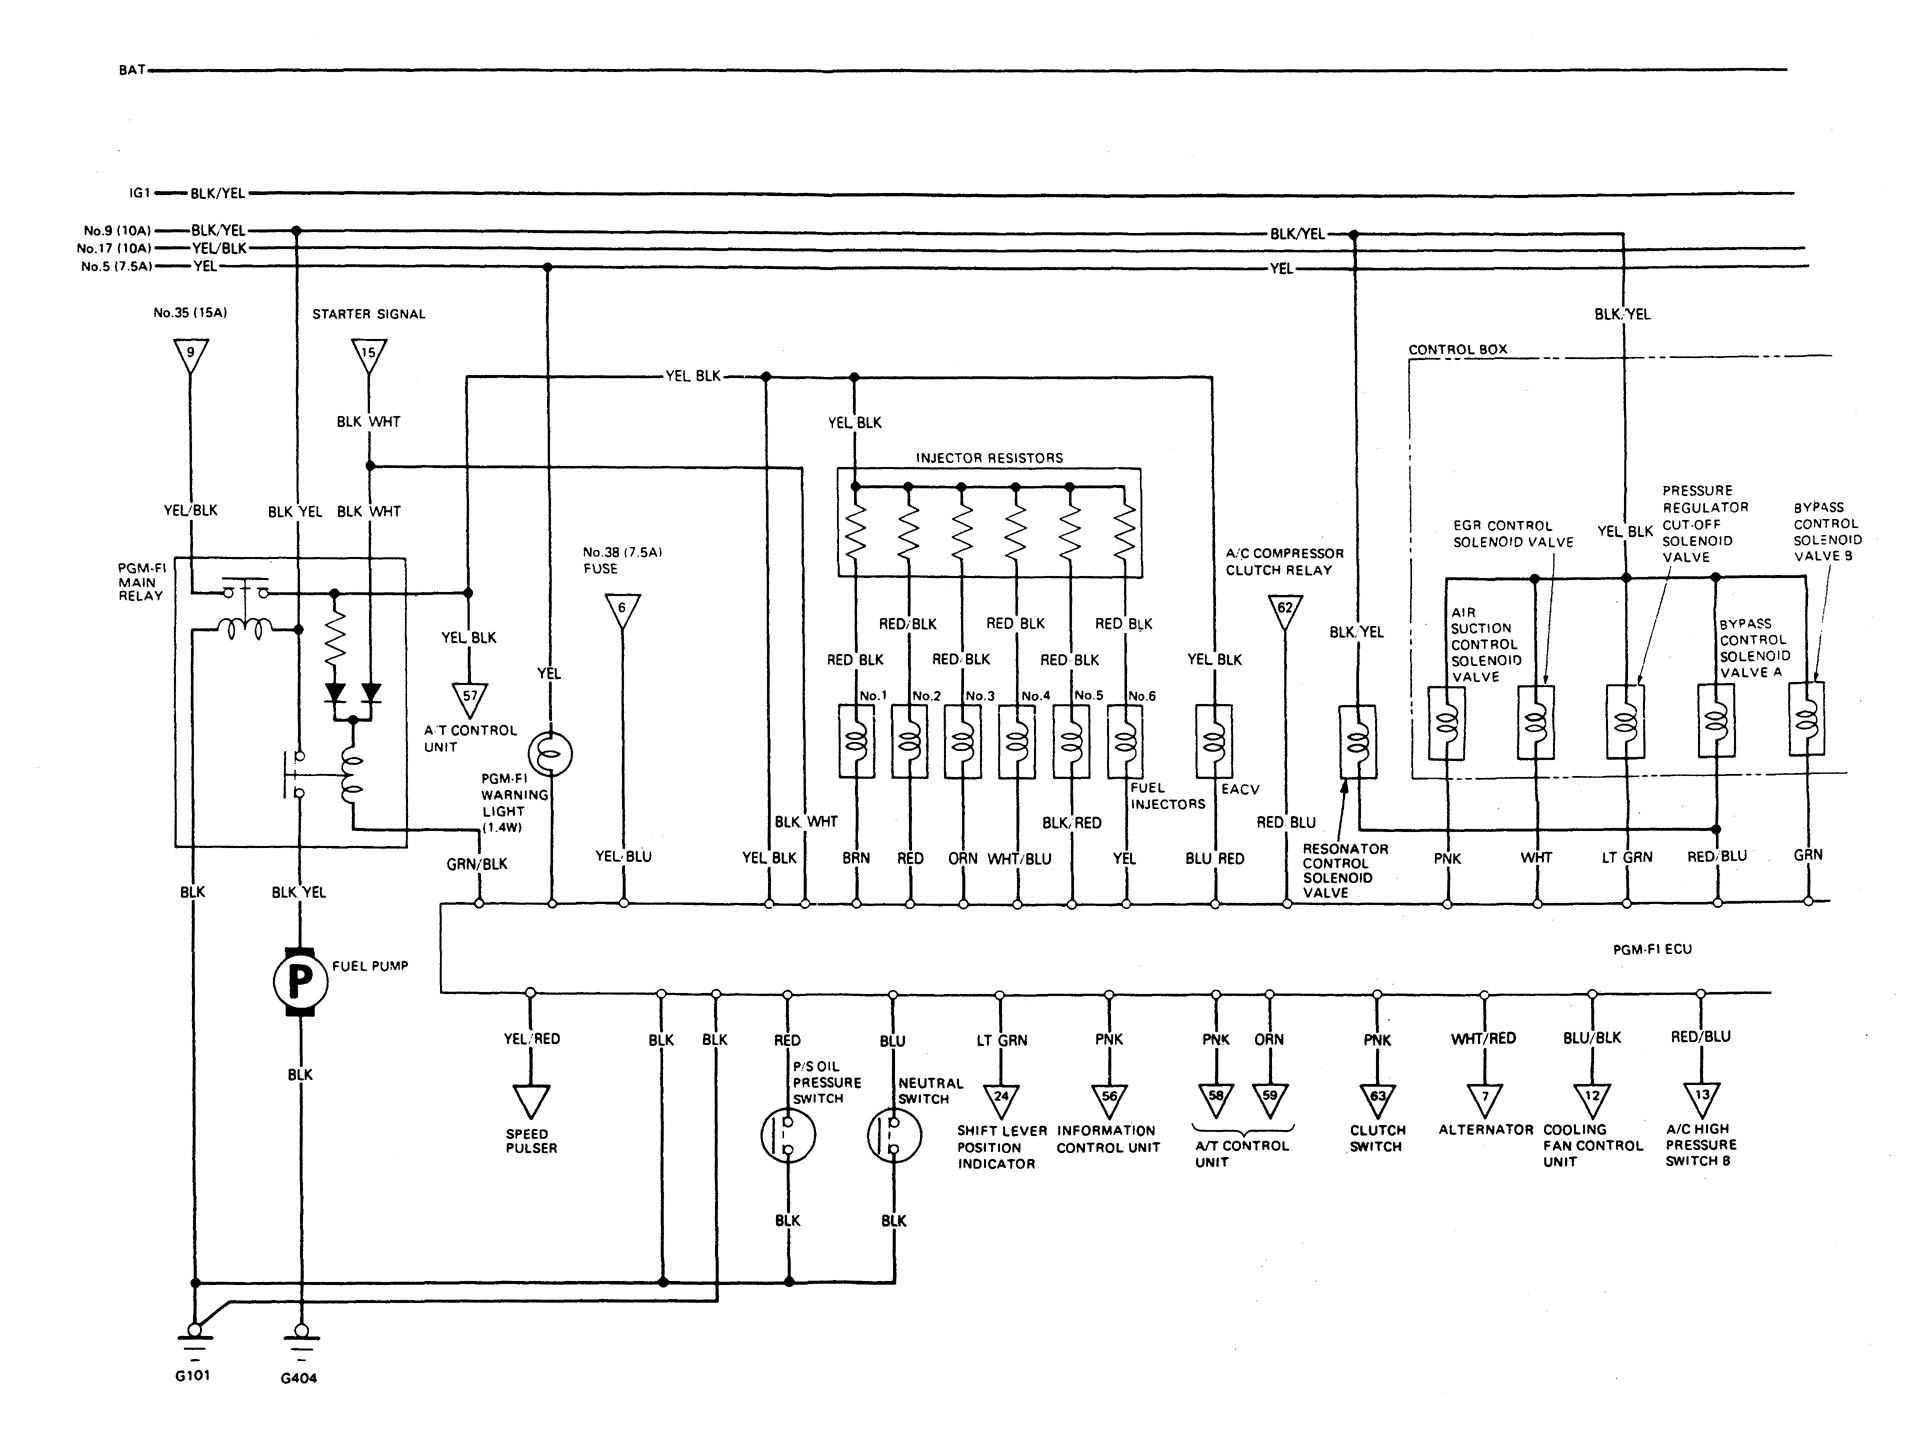 [QMVU_8575]  Acura Legend (1989) - wiring system - computer data lines -  Carknowledge.info | 1989 Acura Legend Wiring Diagram |  | Carknowledge.info